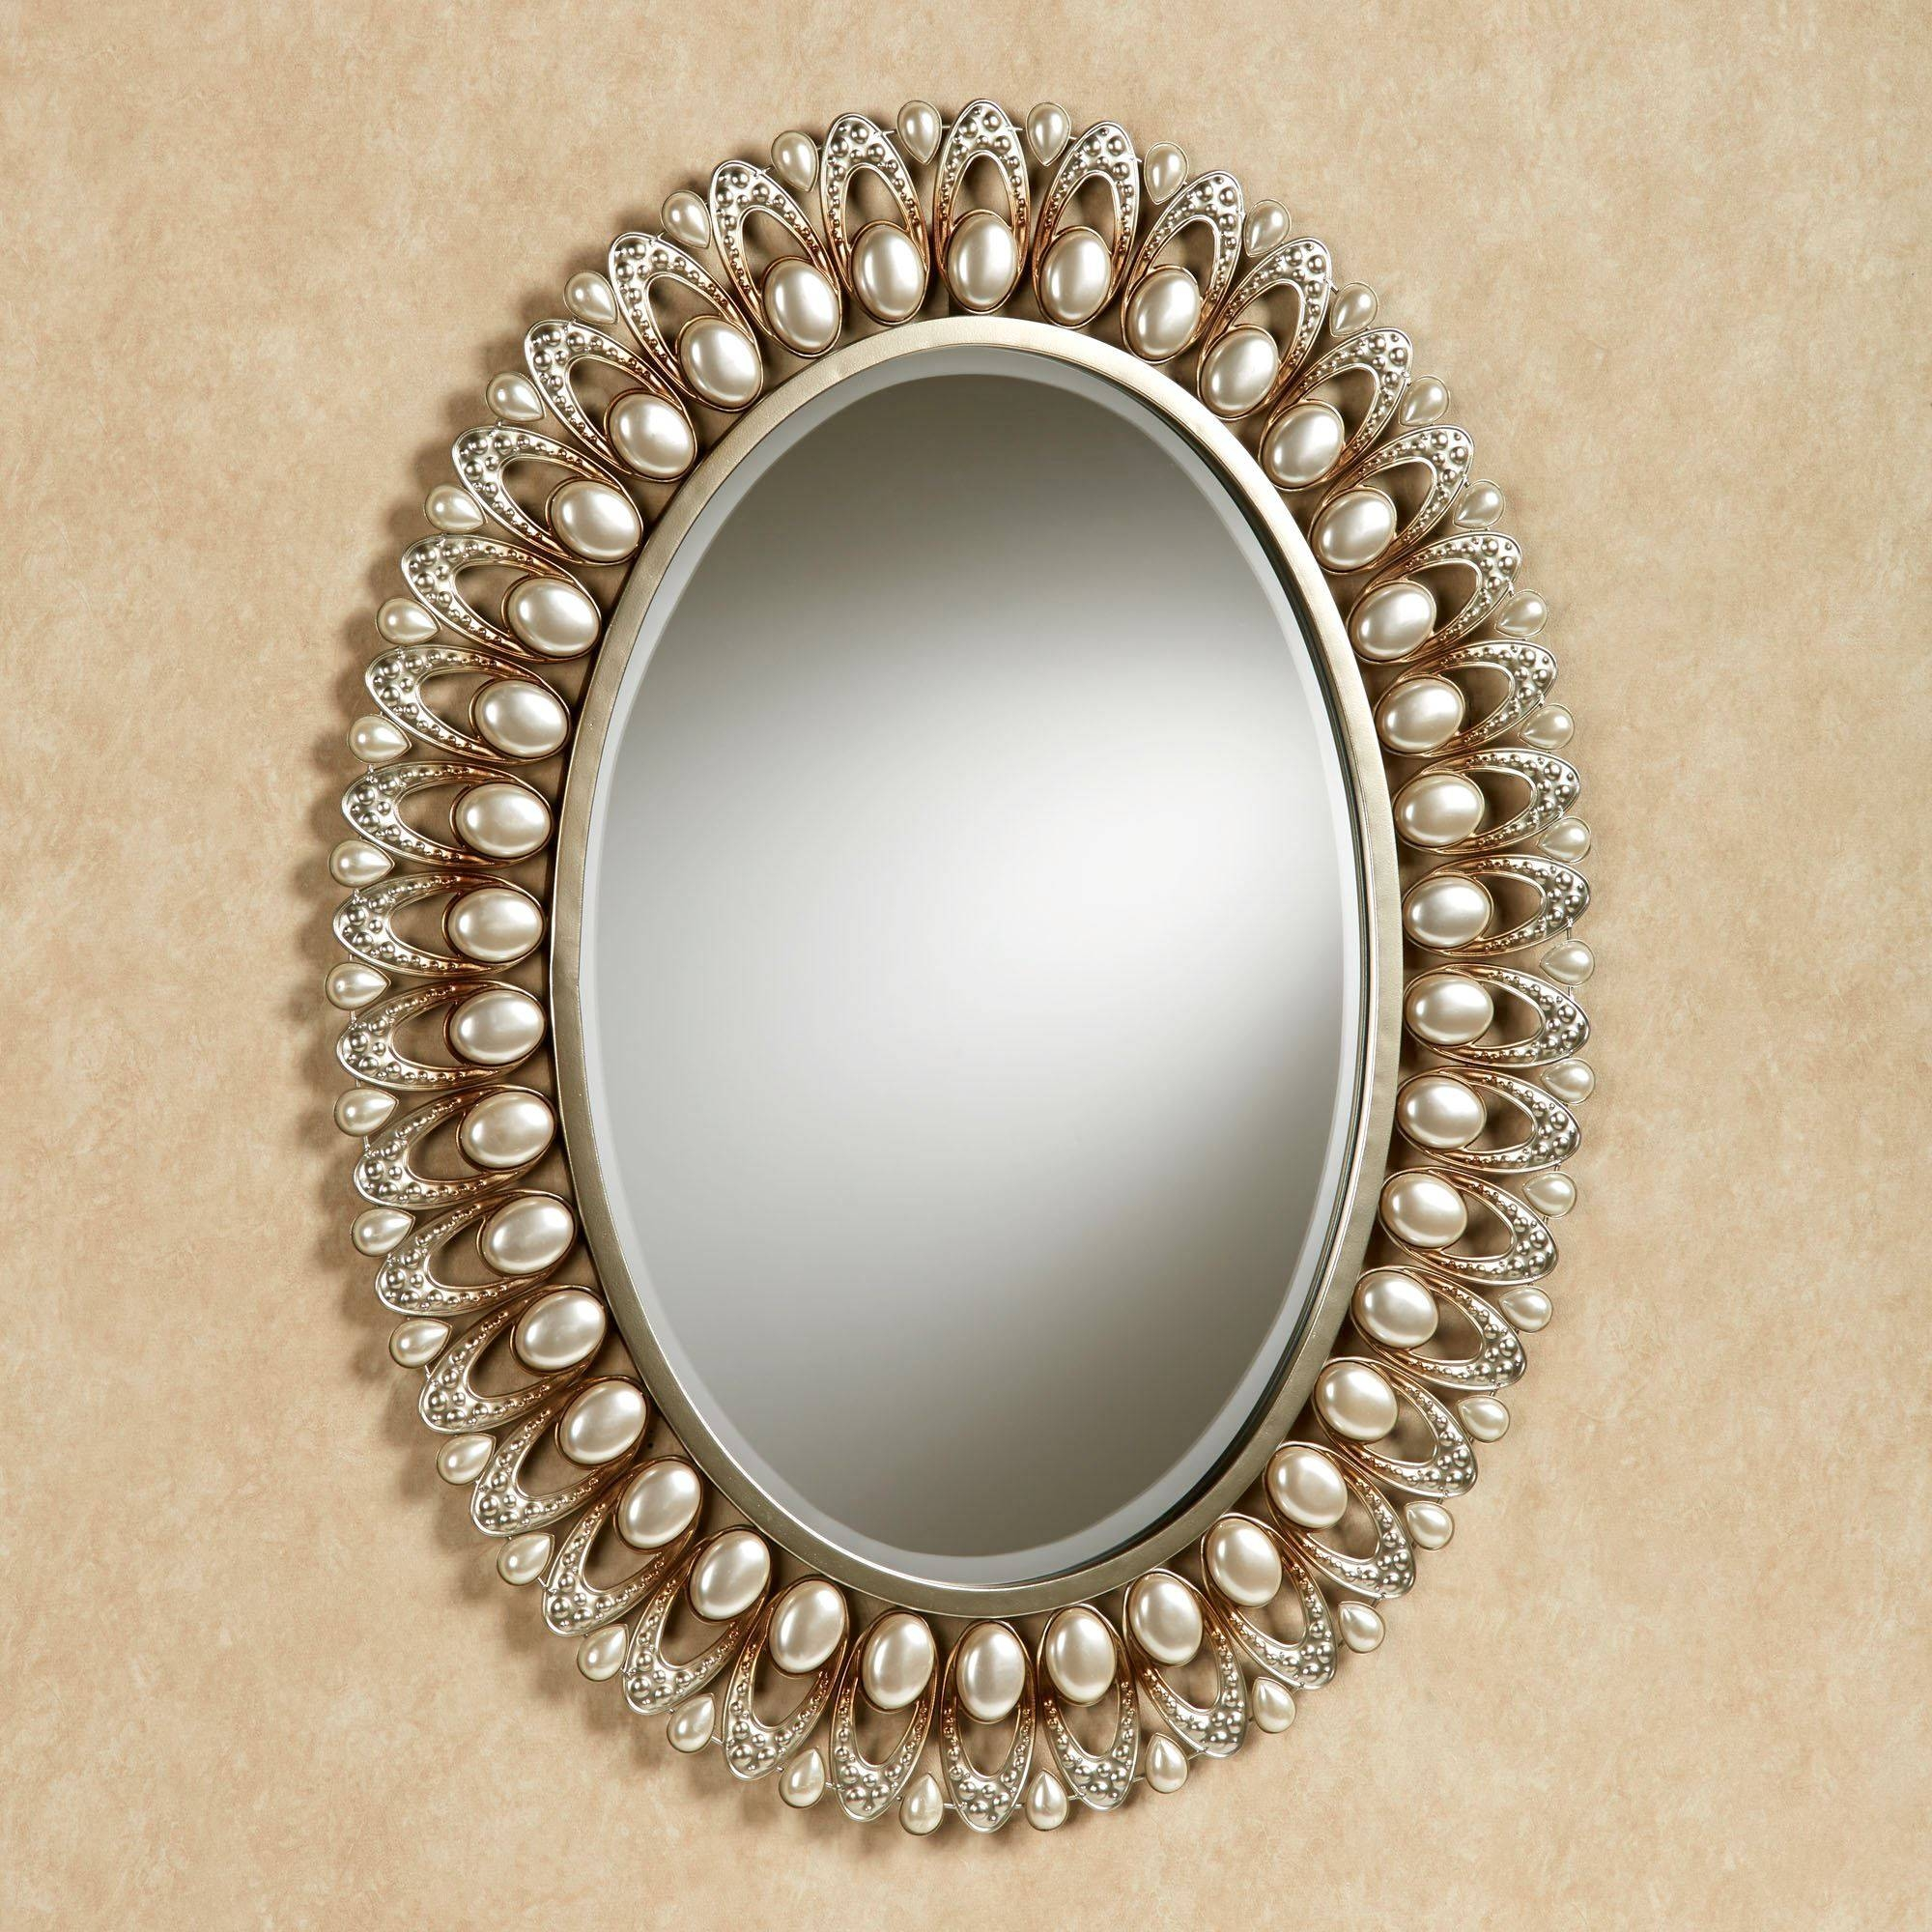 Oval Wall Mirrors pertaining to Oval Mirrors for Walls (Image 19 of 25)